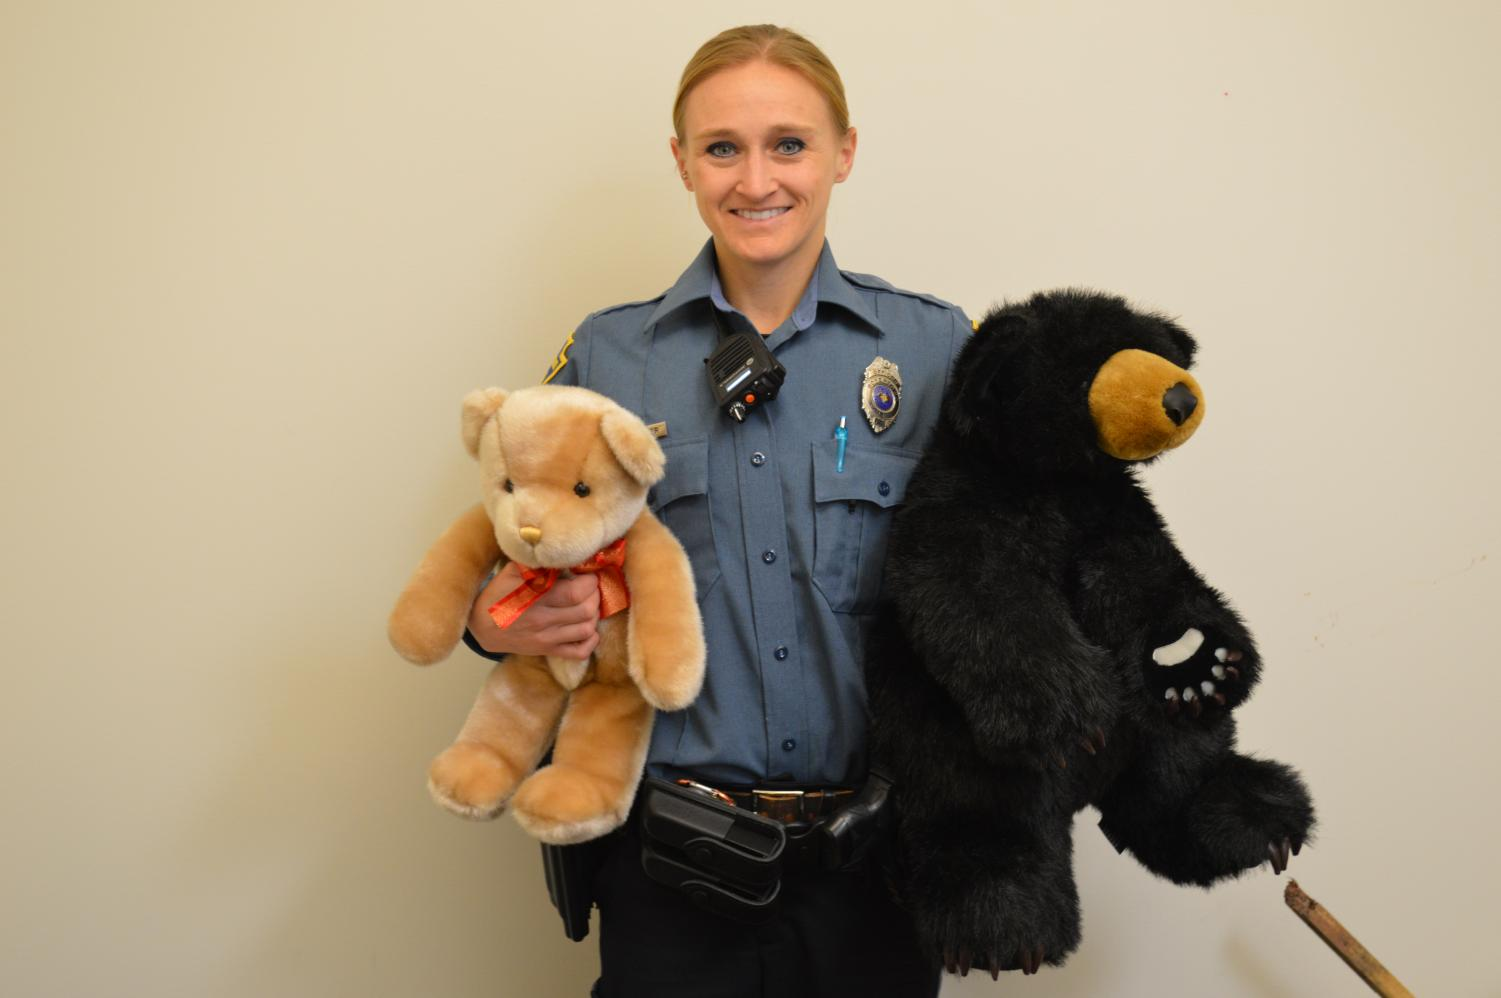 Officer Kristen Yeager, who has served as a police officer since 2007, recently joined Boyertown in August as part of buffing up security.